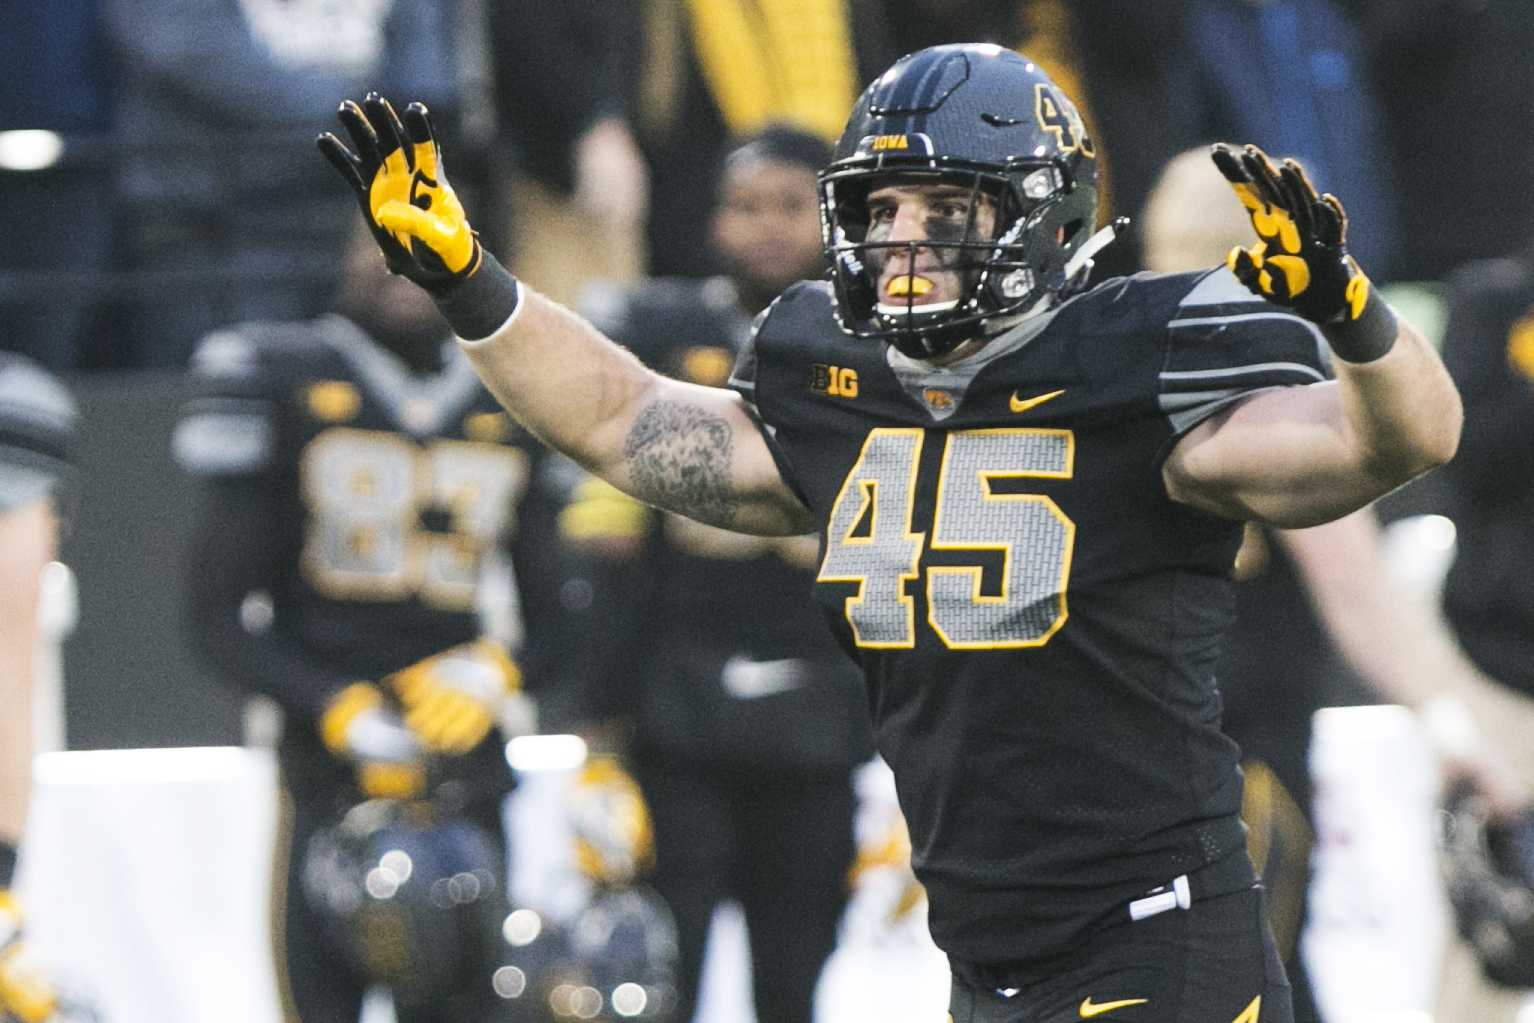 Iowa fullback Drake Kulick gestures during the Iowa/Ohio State football game in Kinnick Stadium on Saturday, Nov. 4, 2017. The Hawkeyes defeated the Buckeyes in a storming fashion, 55-24. (Joseph Cress/The Daily Iowan)